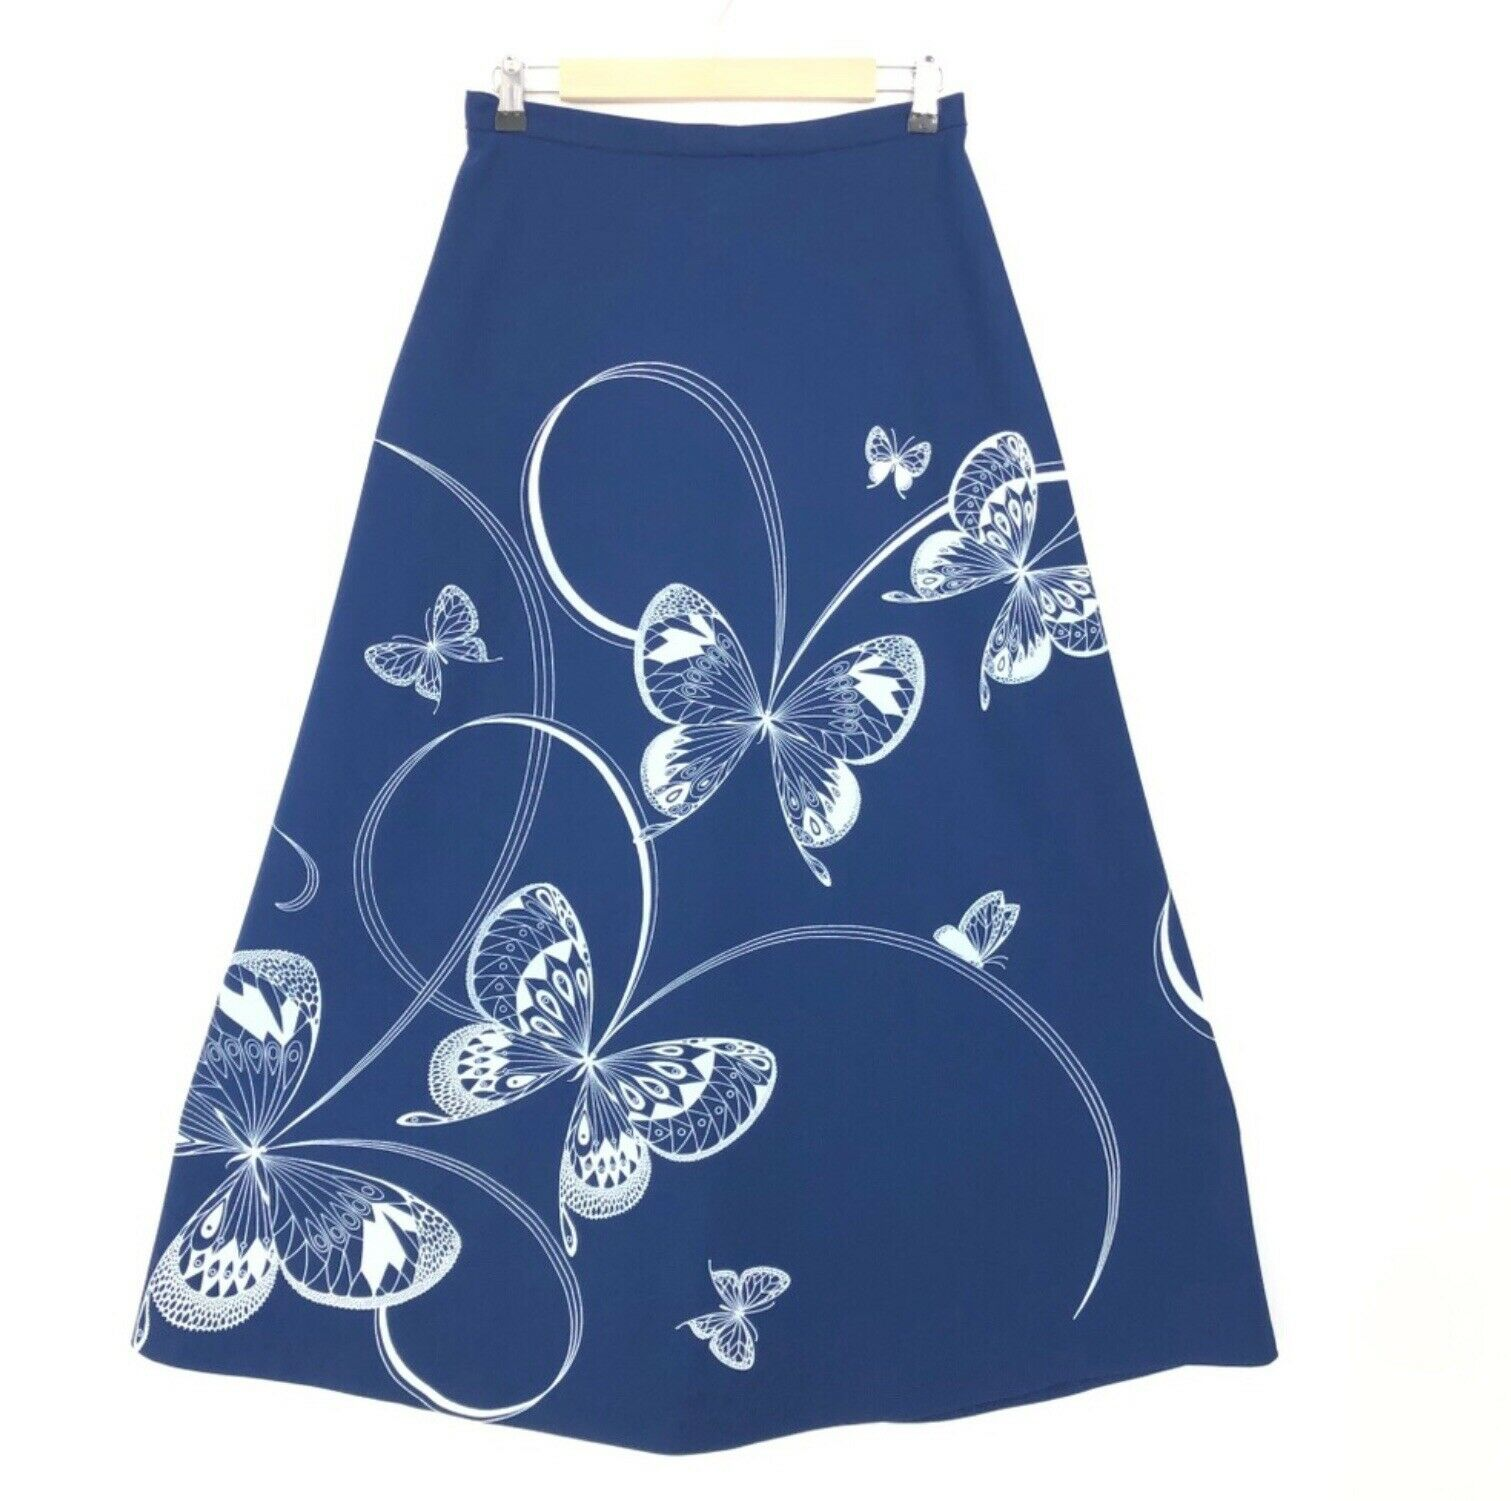 Miss Shaheen A Line Skirt Size 12 Vintage bluee With Butterflies